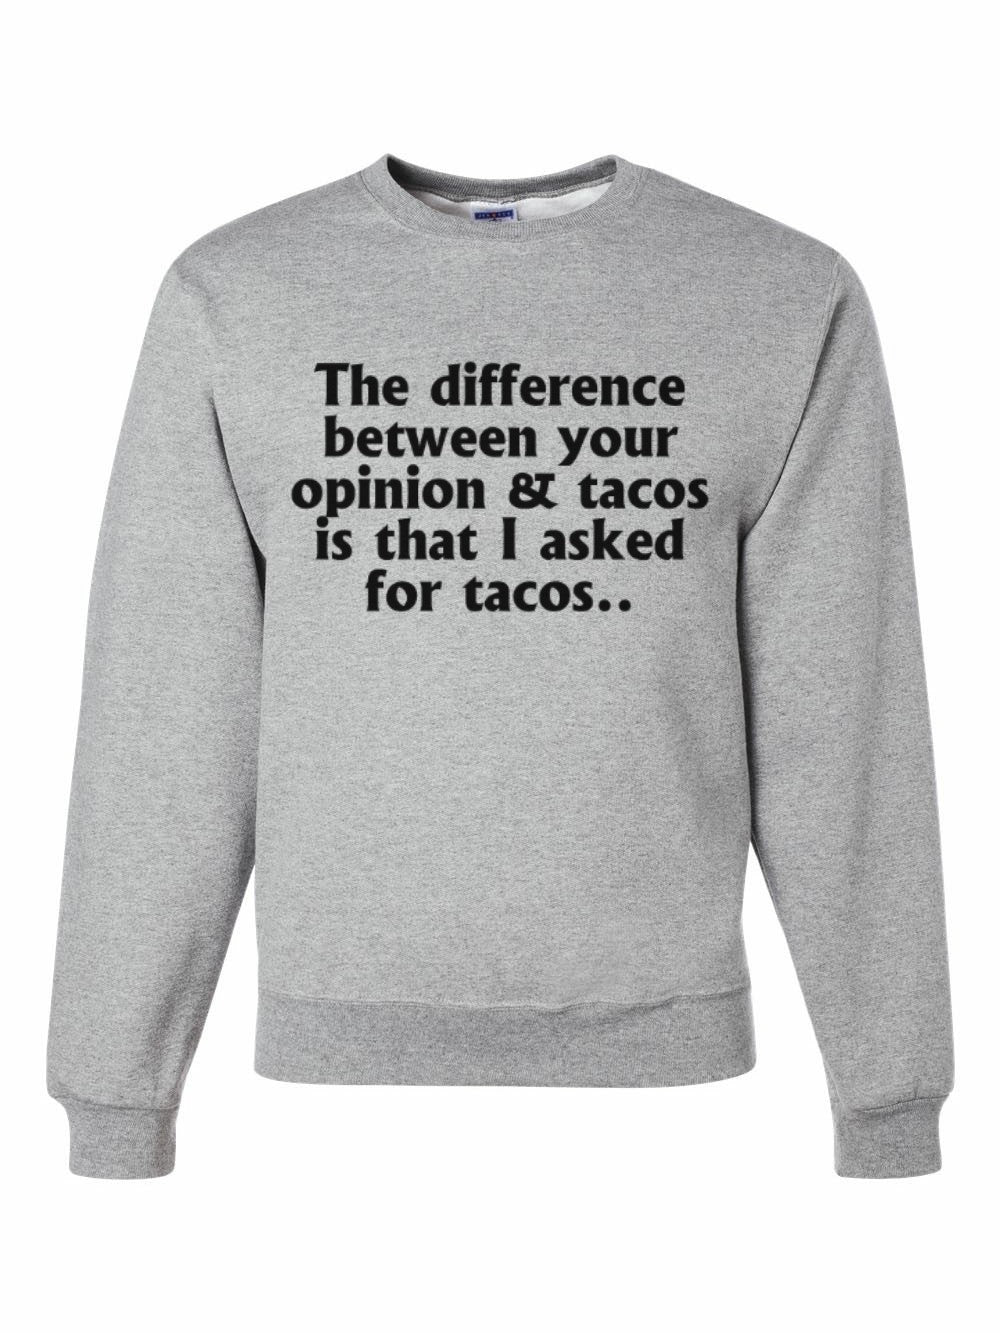 I asked for Tacos Sweatshirt